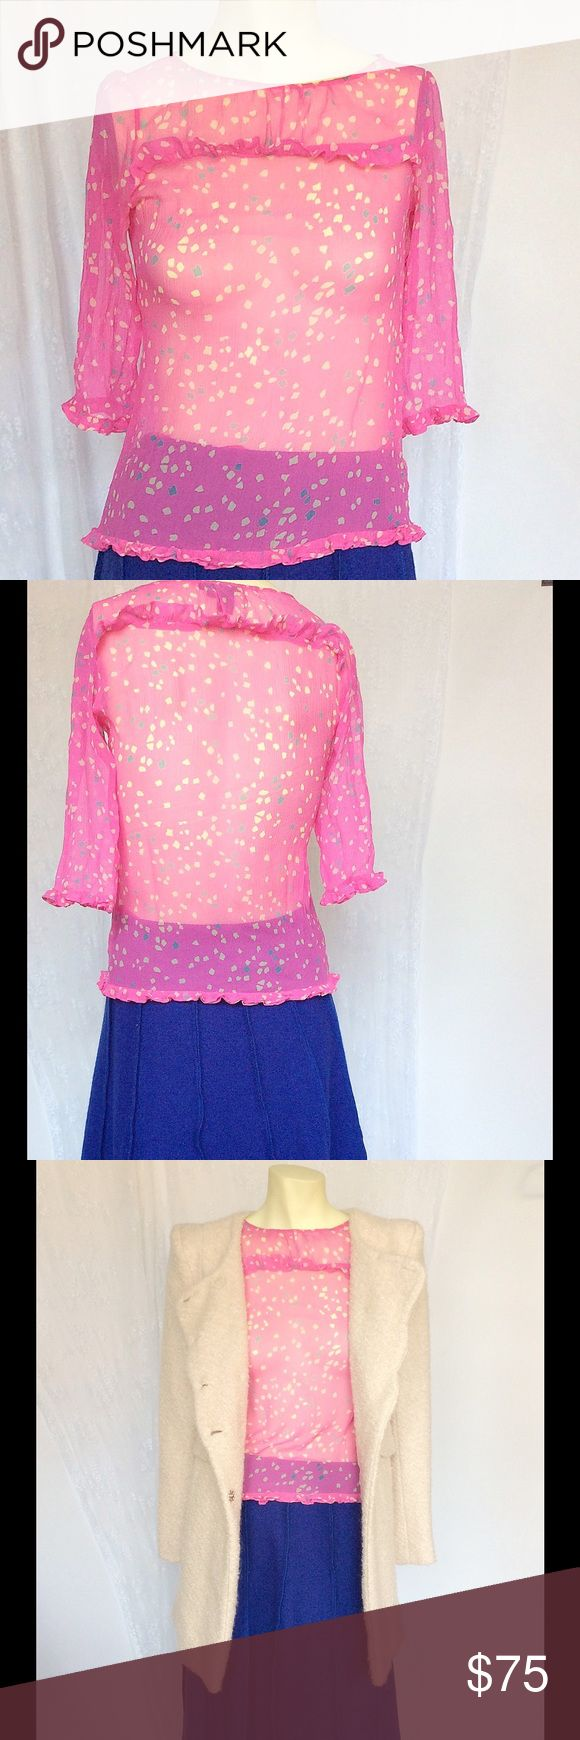 MARC JACOBS HOT PINK POLKA DOTS SILK TOP S Like new, used once. Bundle to save! Marc Jacobs Tops Blouses